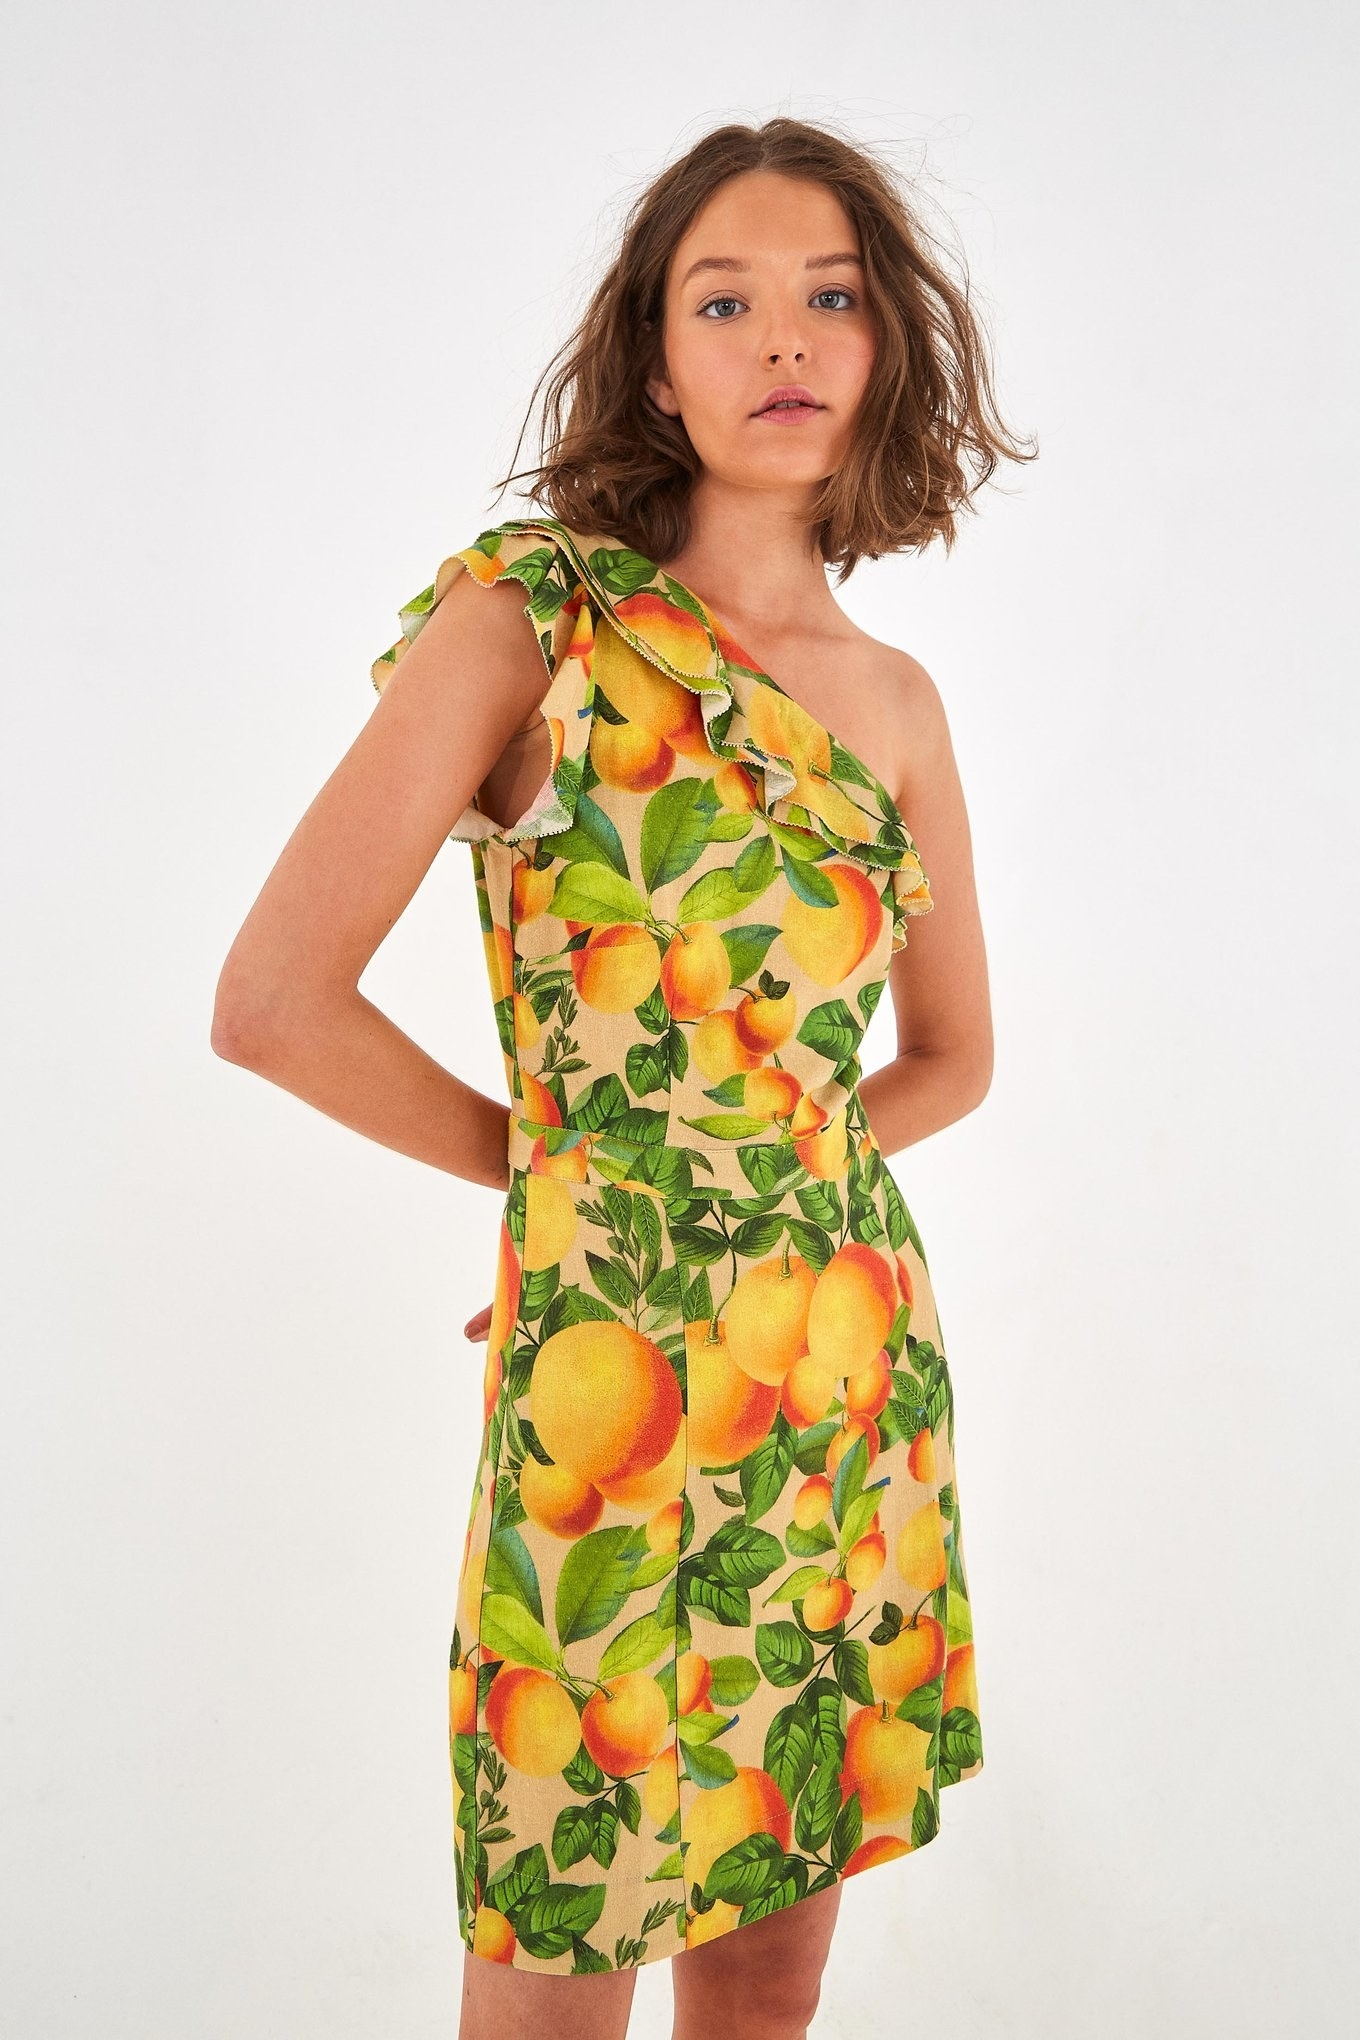 a model in the one shouldered short dress cover in a print of oranges and leaves